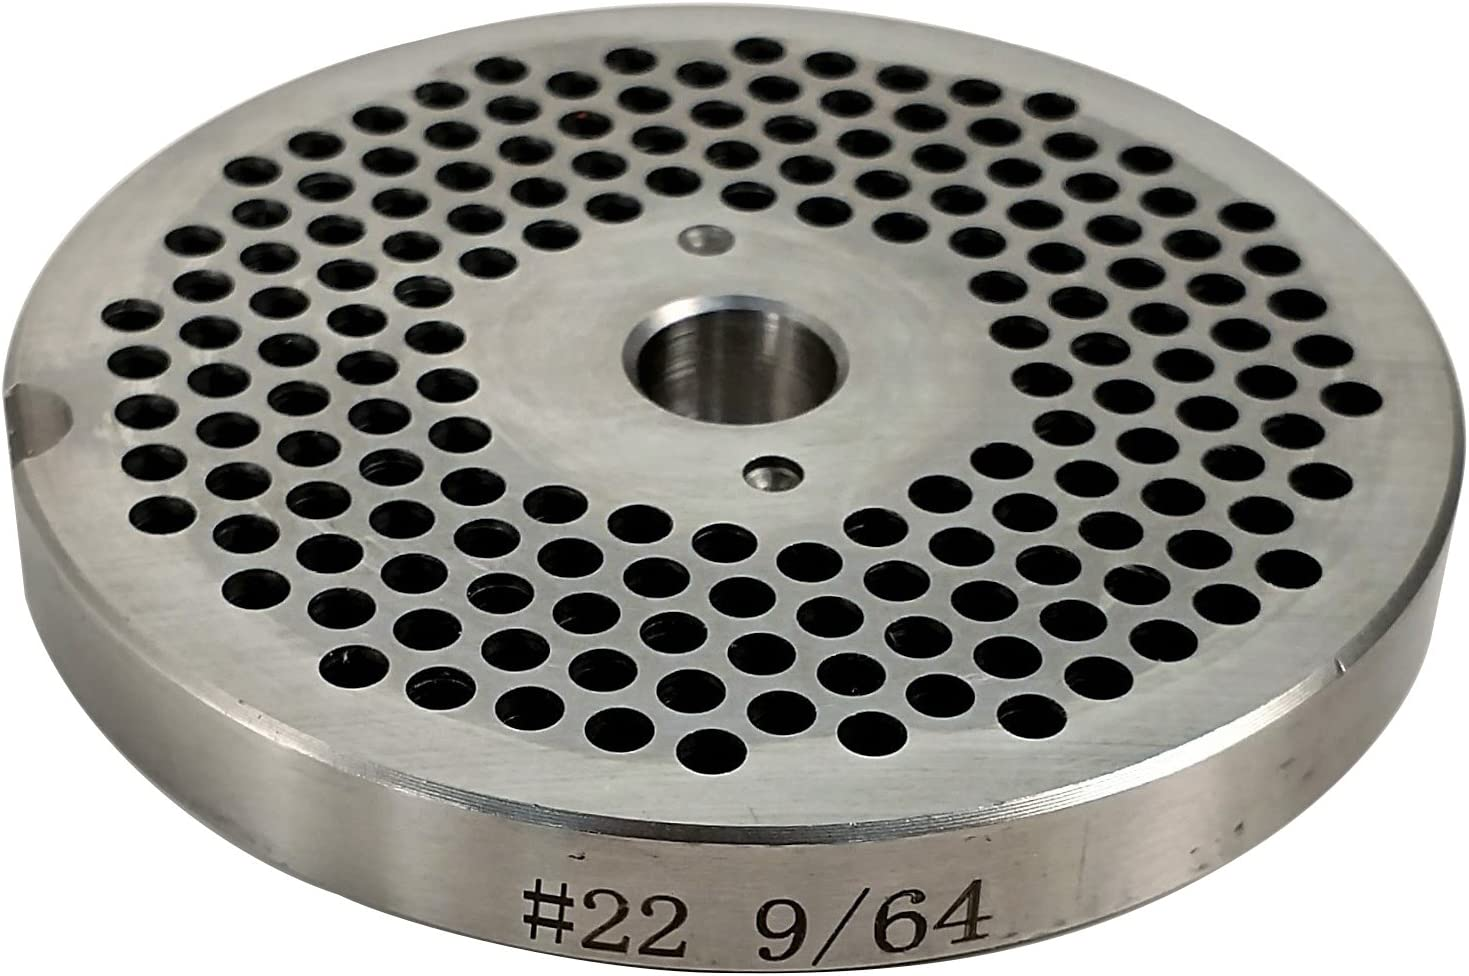 Food Service Knives #22 Meat Grinder Plate (9/64 in.)